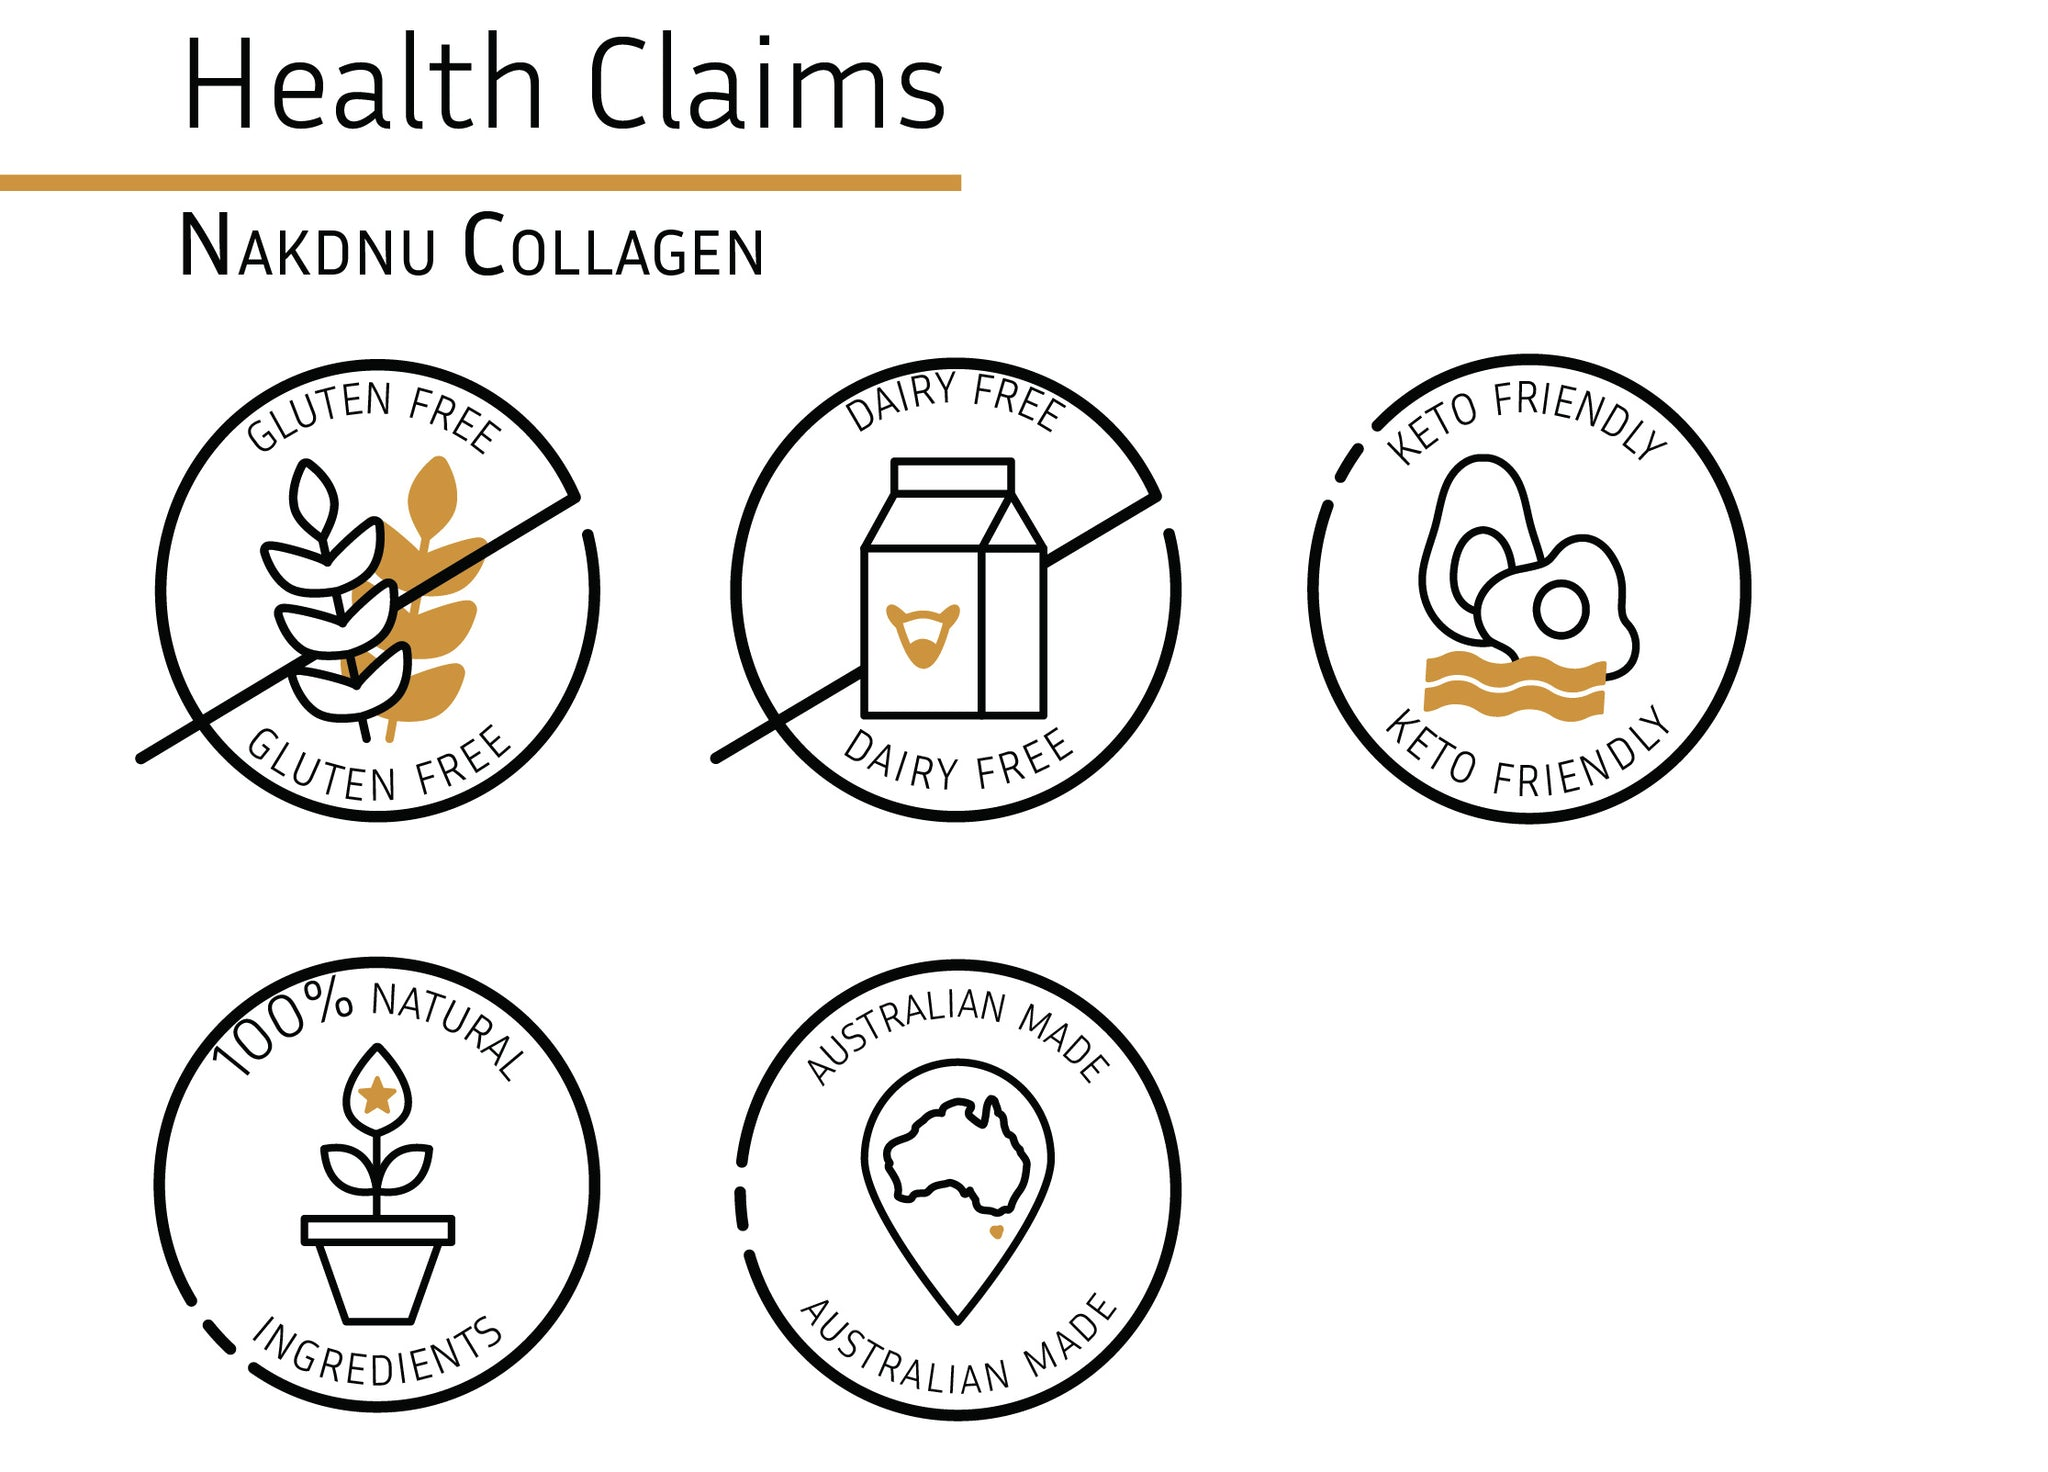 Nakdnu Collagen Health Claims